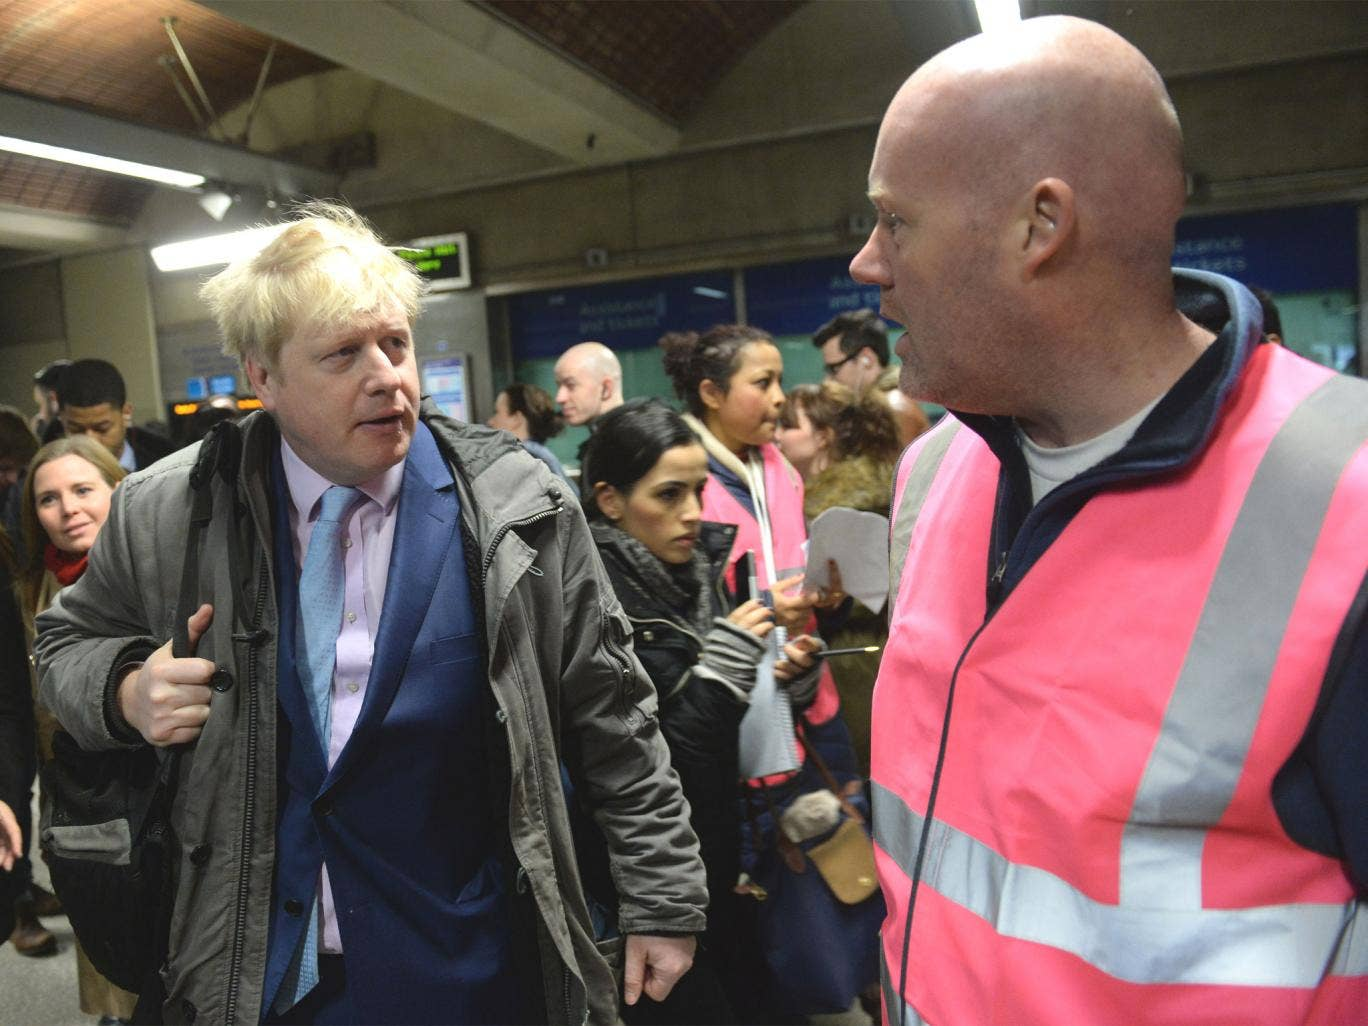 The Mayor of London Boris Johnson meets commuters and staff at London Bridge Underground Station